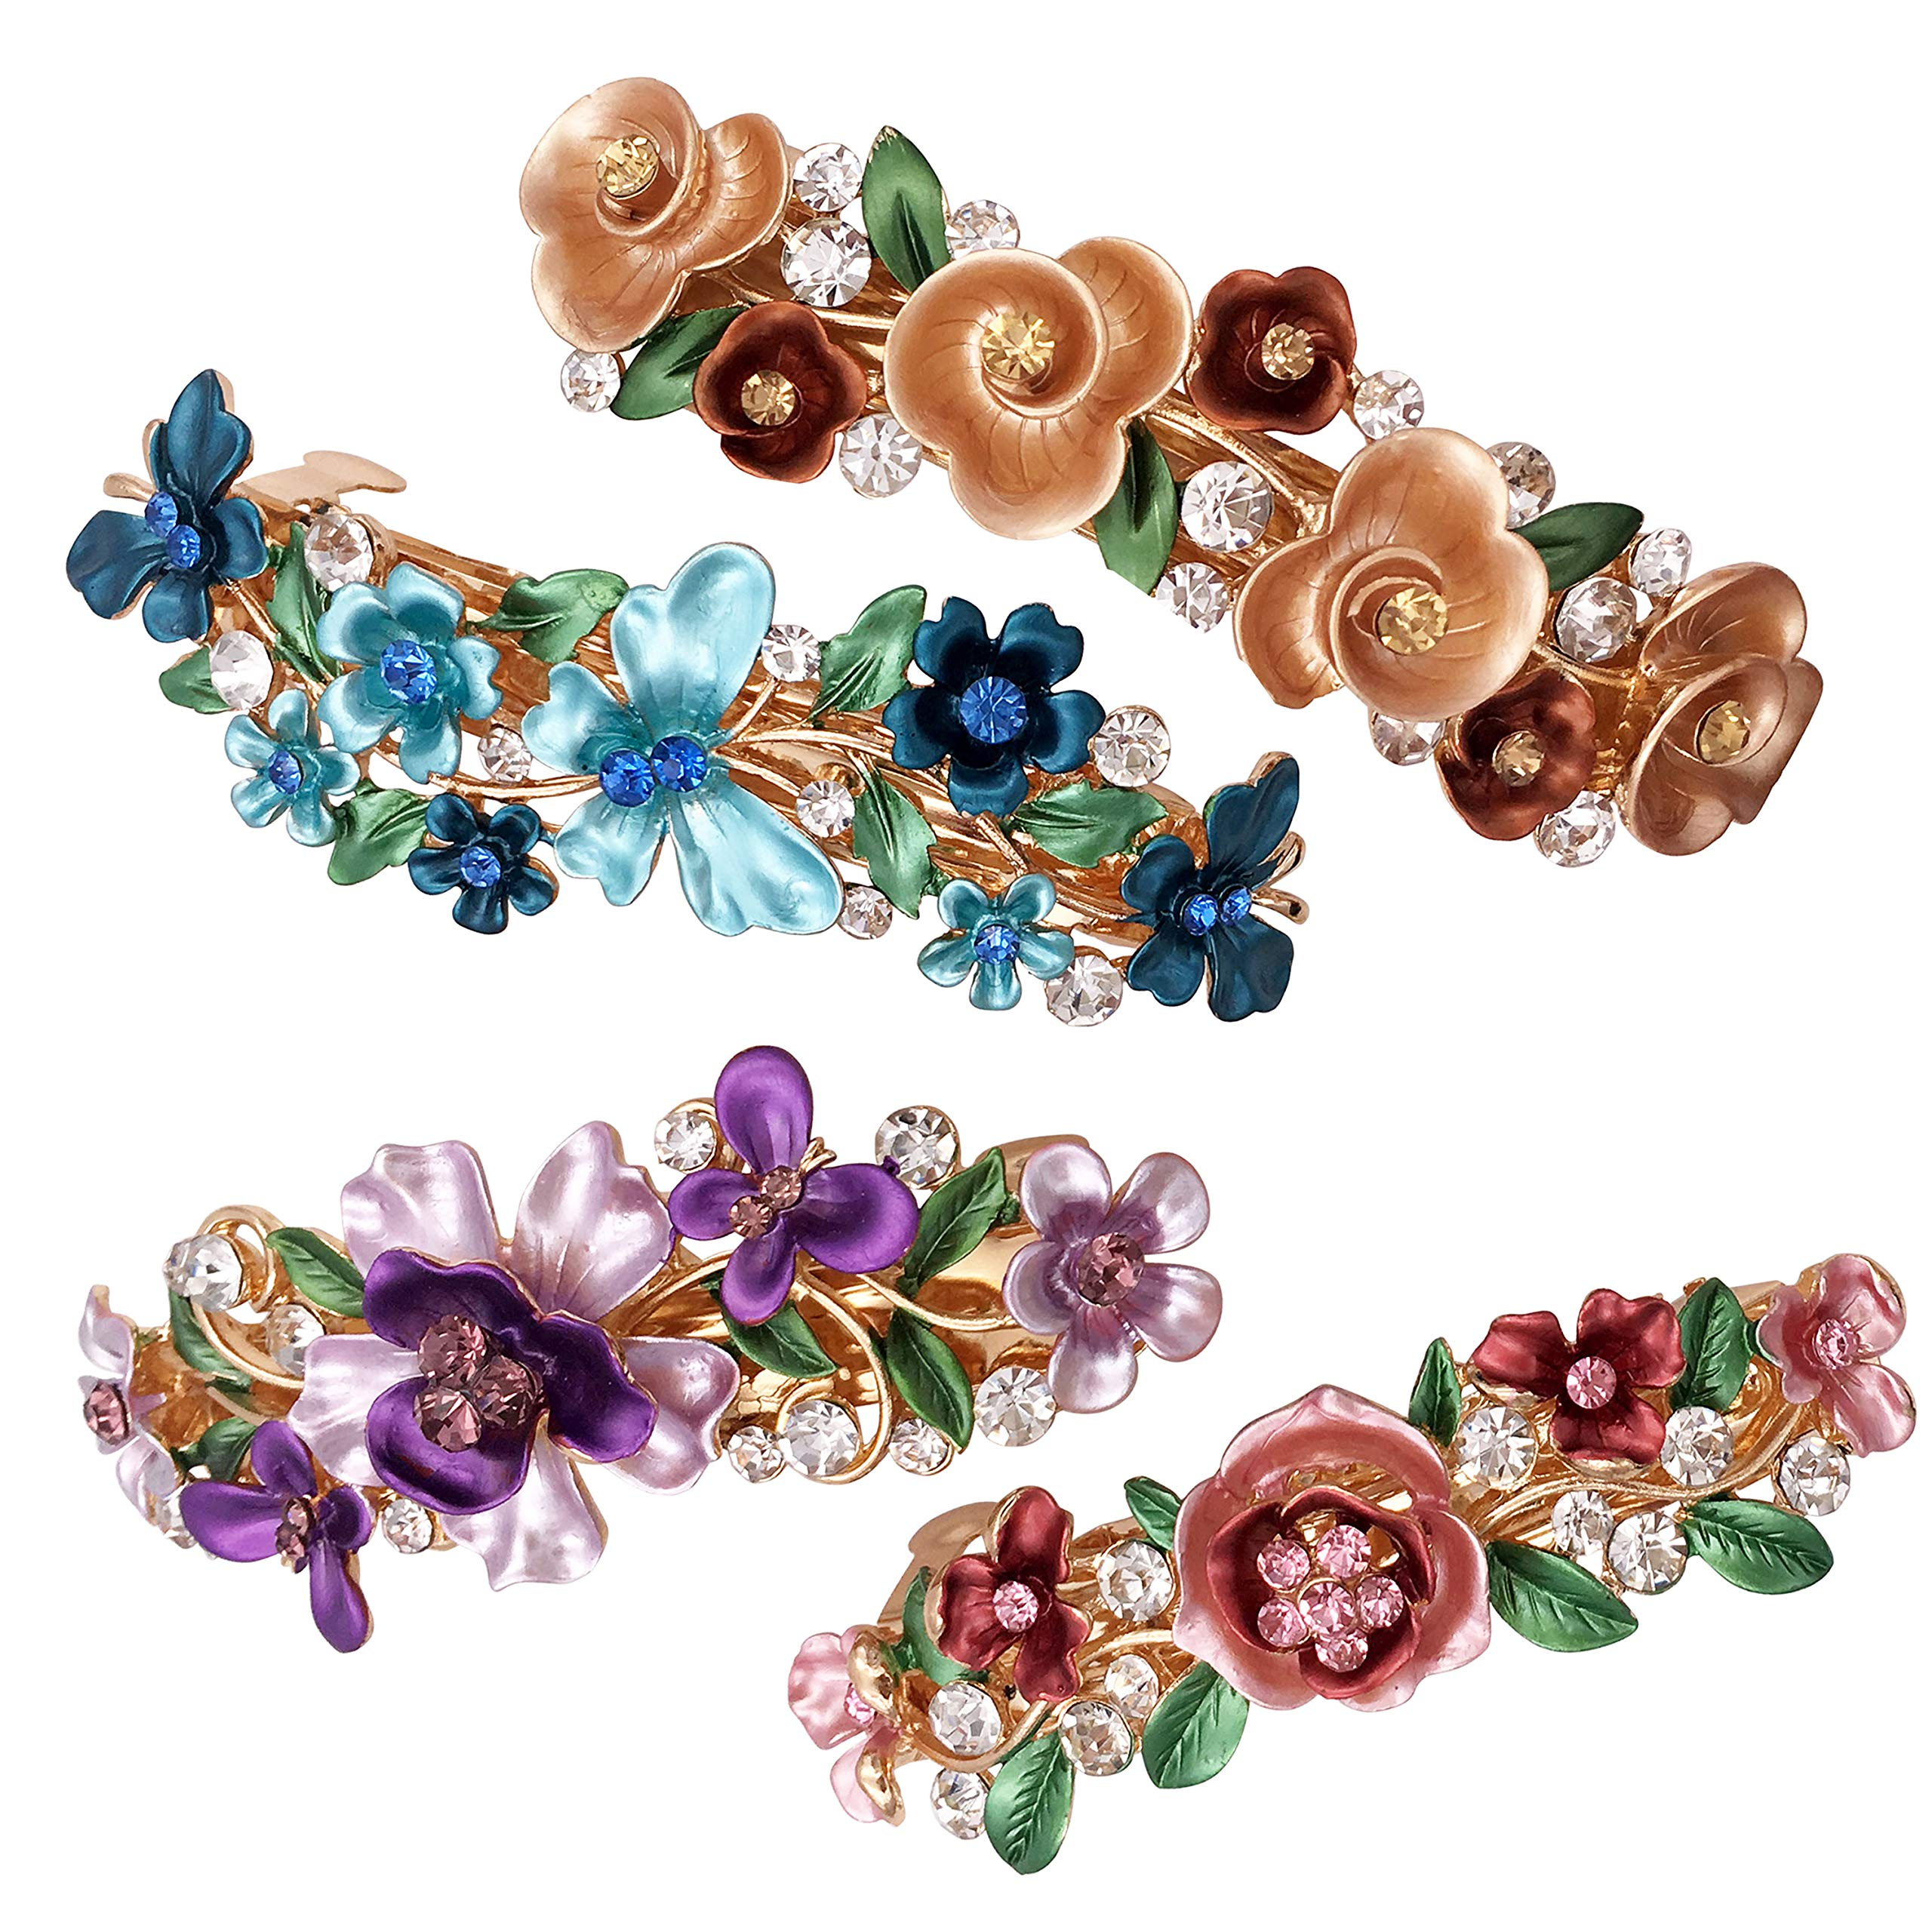 4 Colorful Vintage Flower Design Metal French Barrettes Hair Clasps Accessories Women Girls by Lizzie Kay